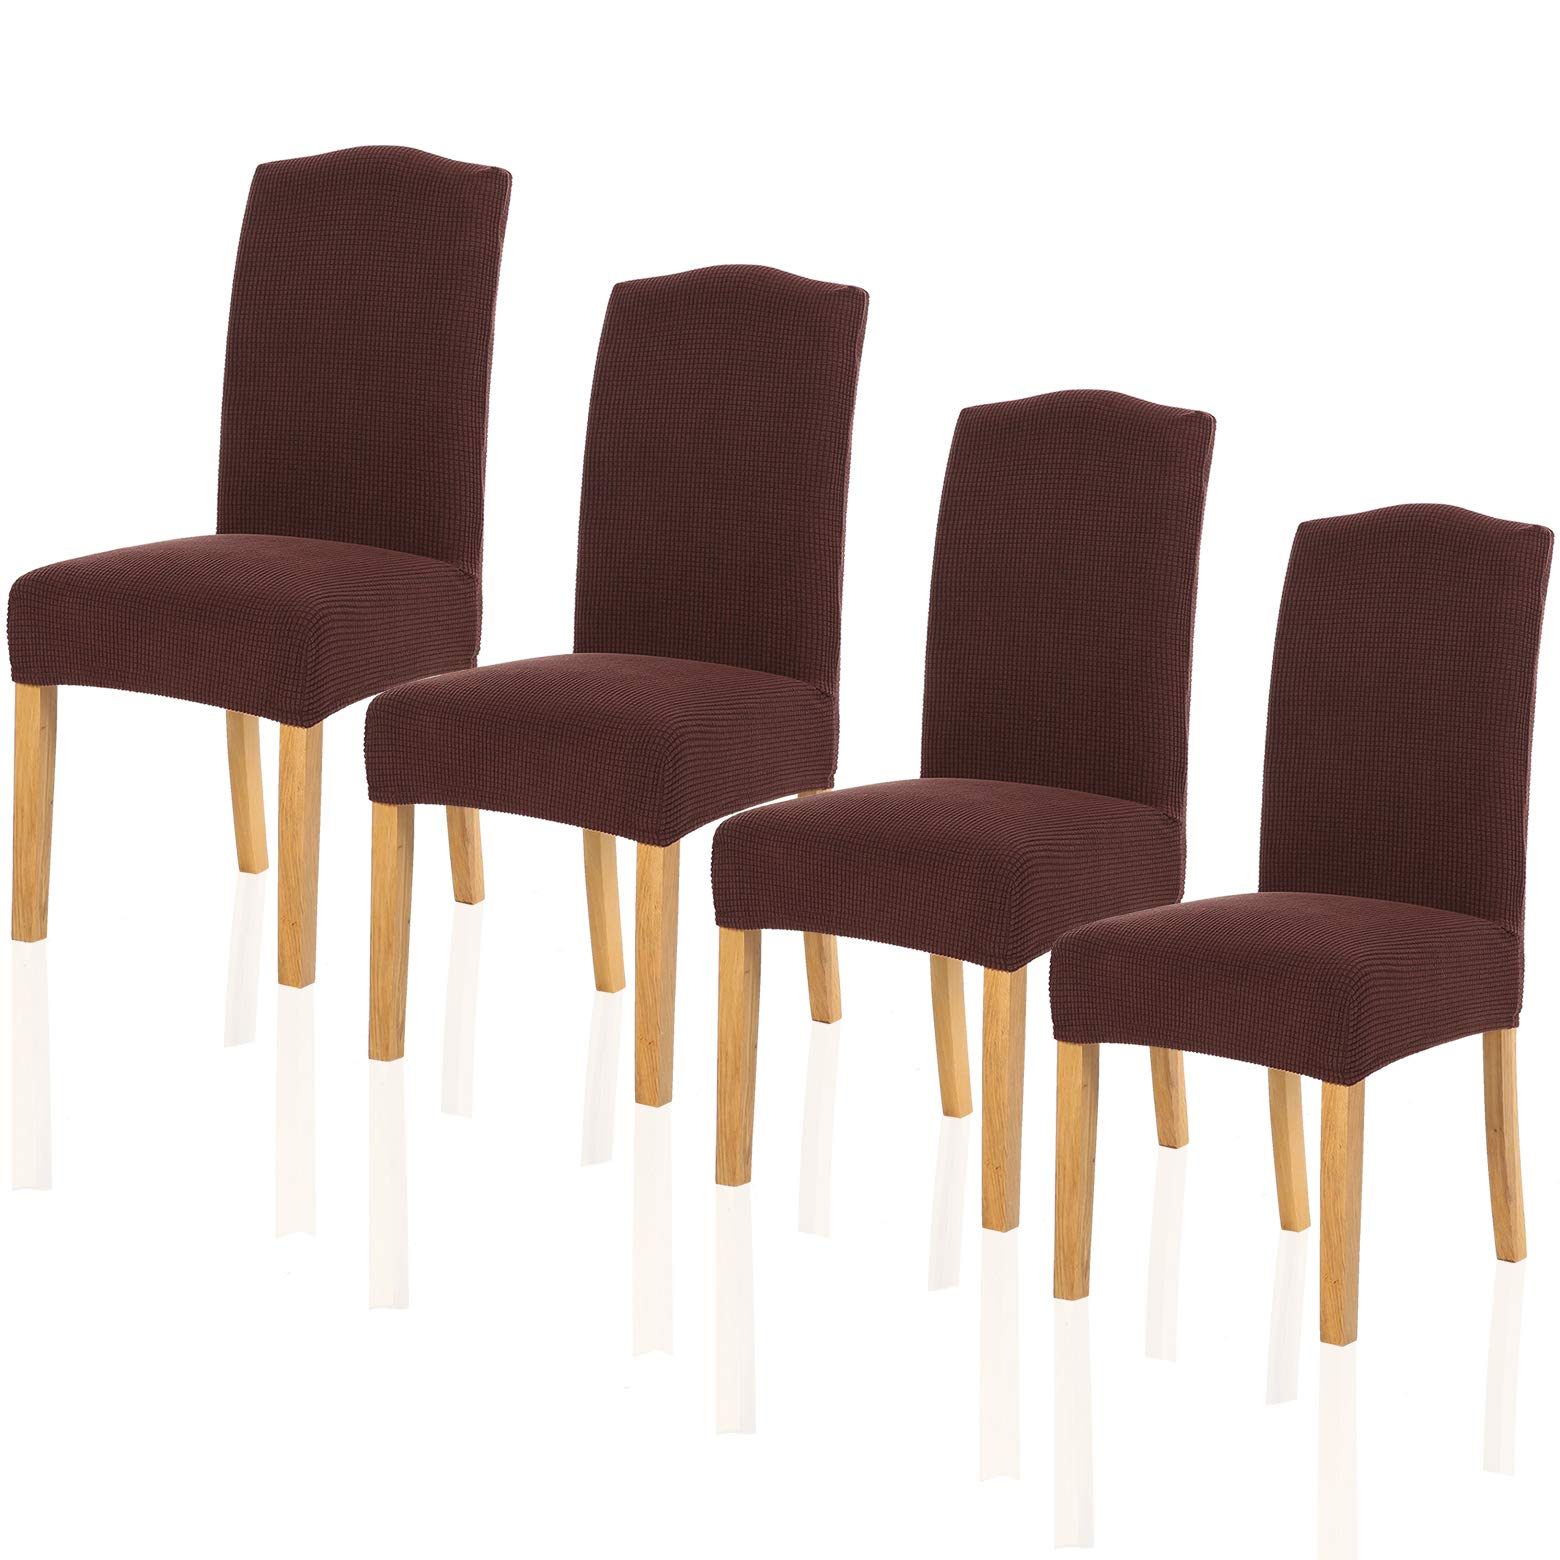 TIANSHU Stretch Chair Cover for Home Decor Dining Chair Slipcover (4 Pack, Chocolate)